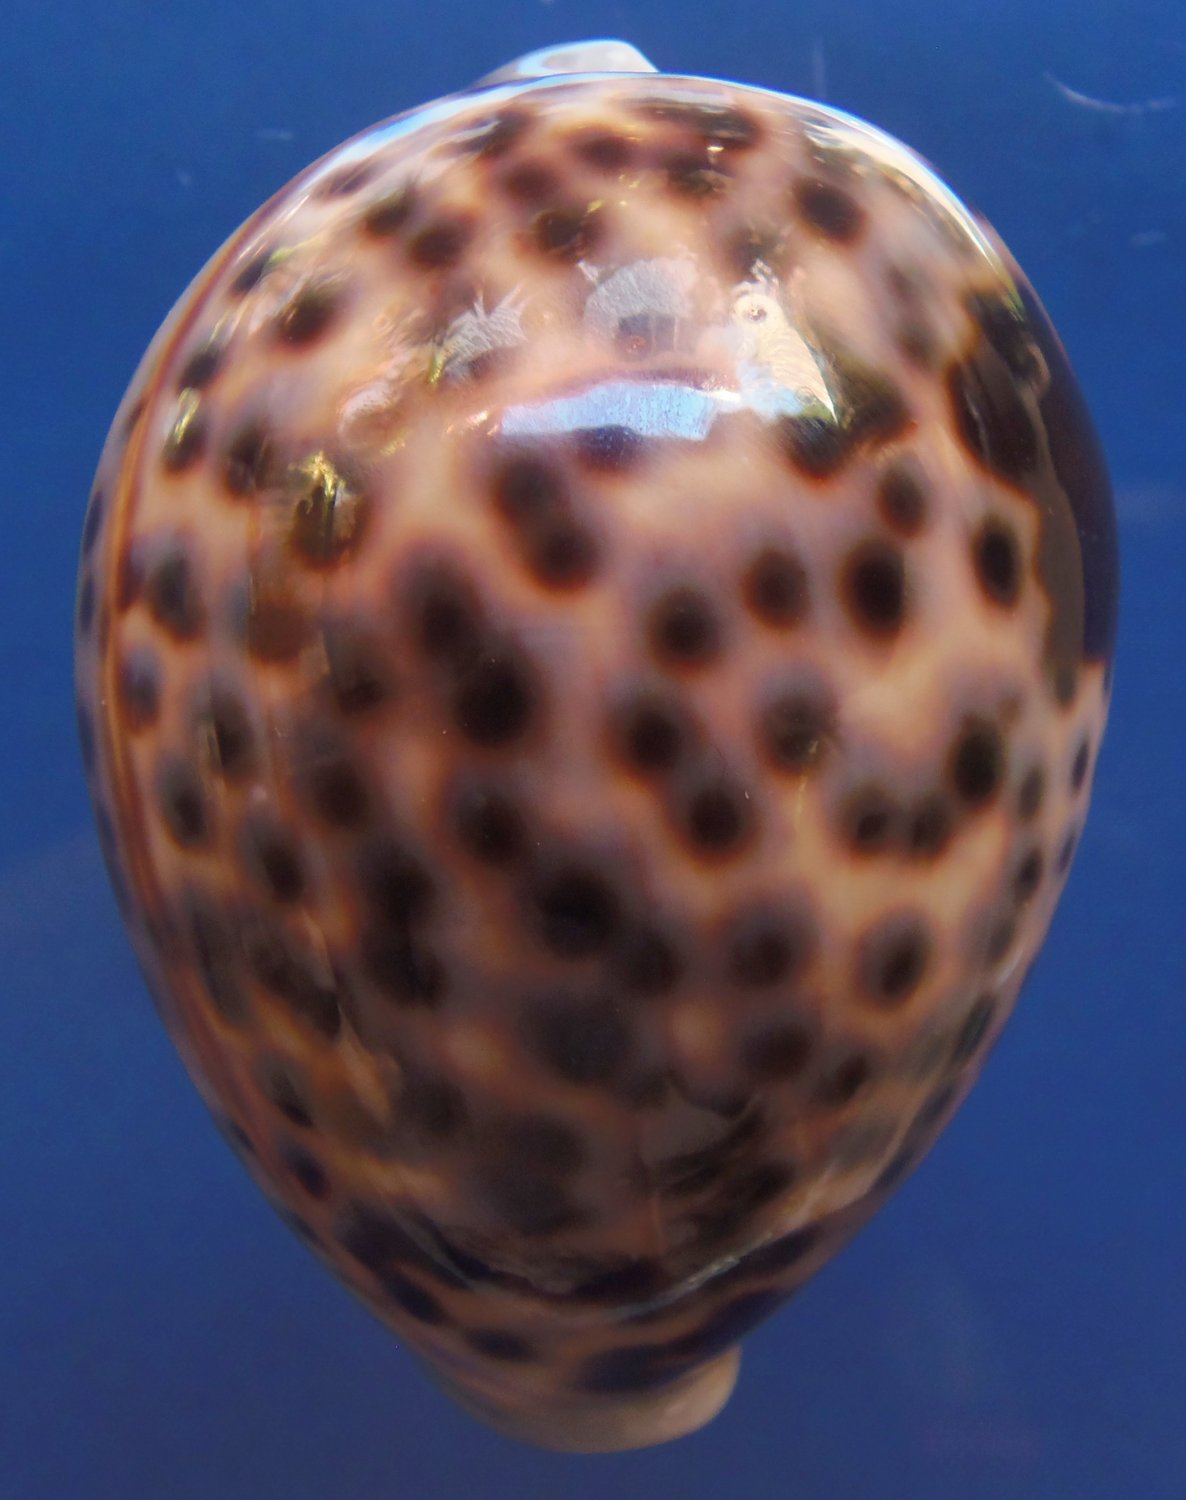 B251 Gems Under the Sea 87478  Cypraea tigris, 76 mm,big dots